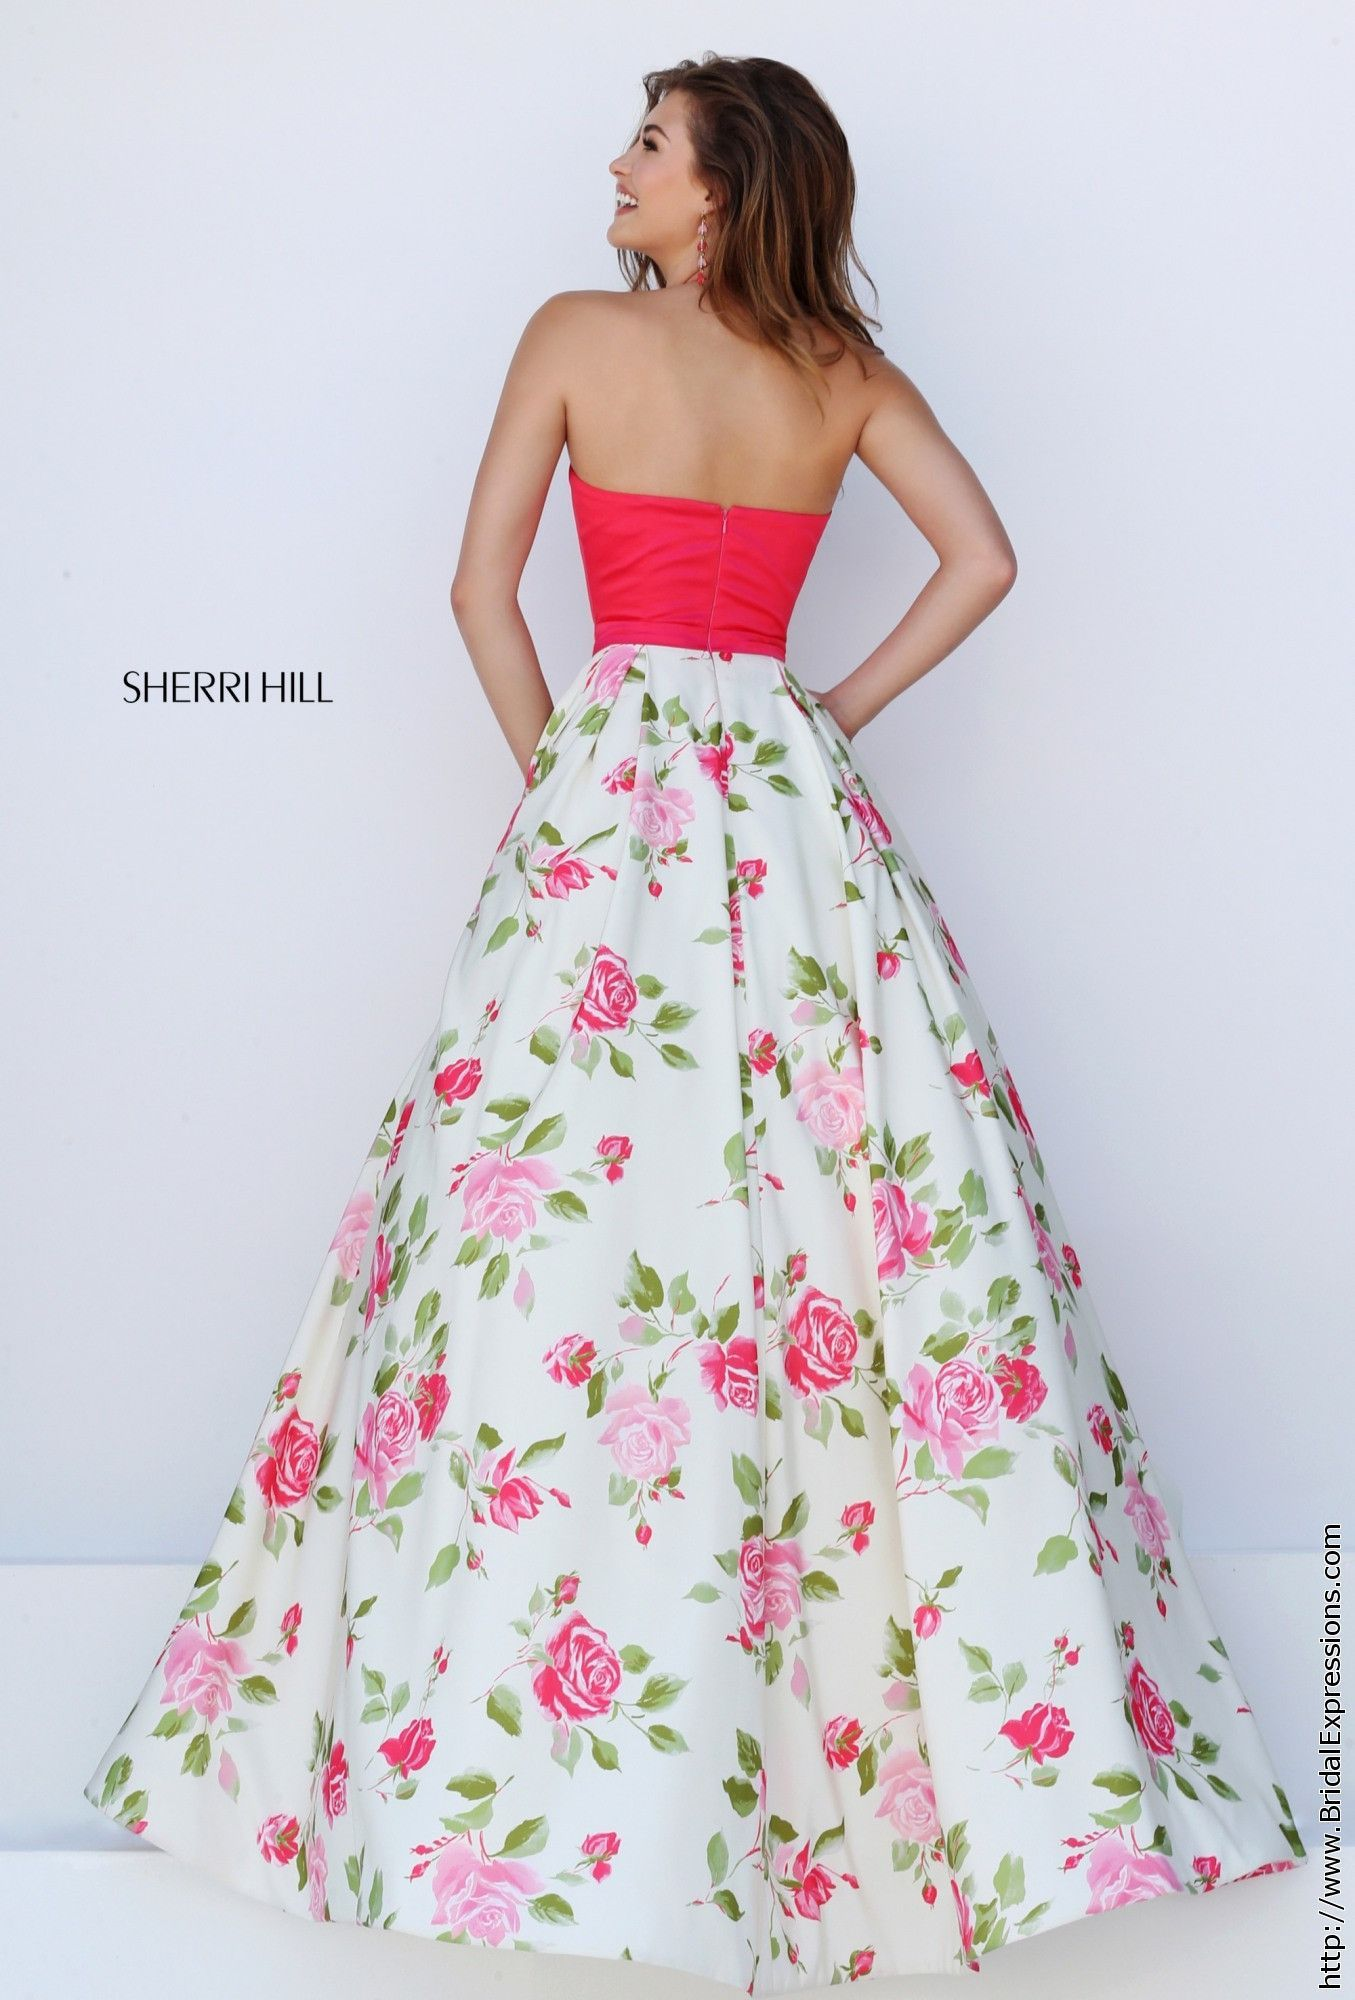 Sherri Hill 50231 Coral and Ivory Floral Print Halter Prom Dress